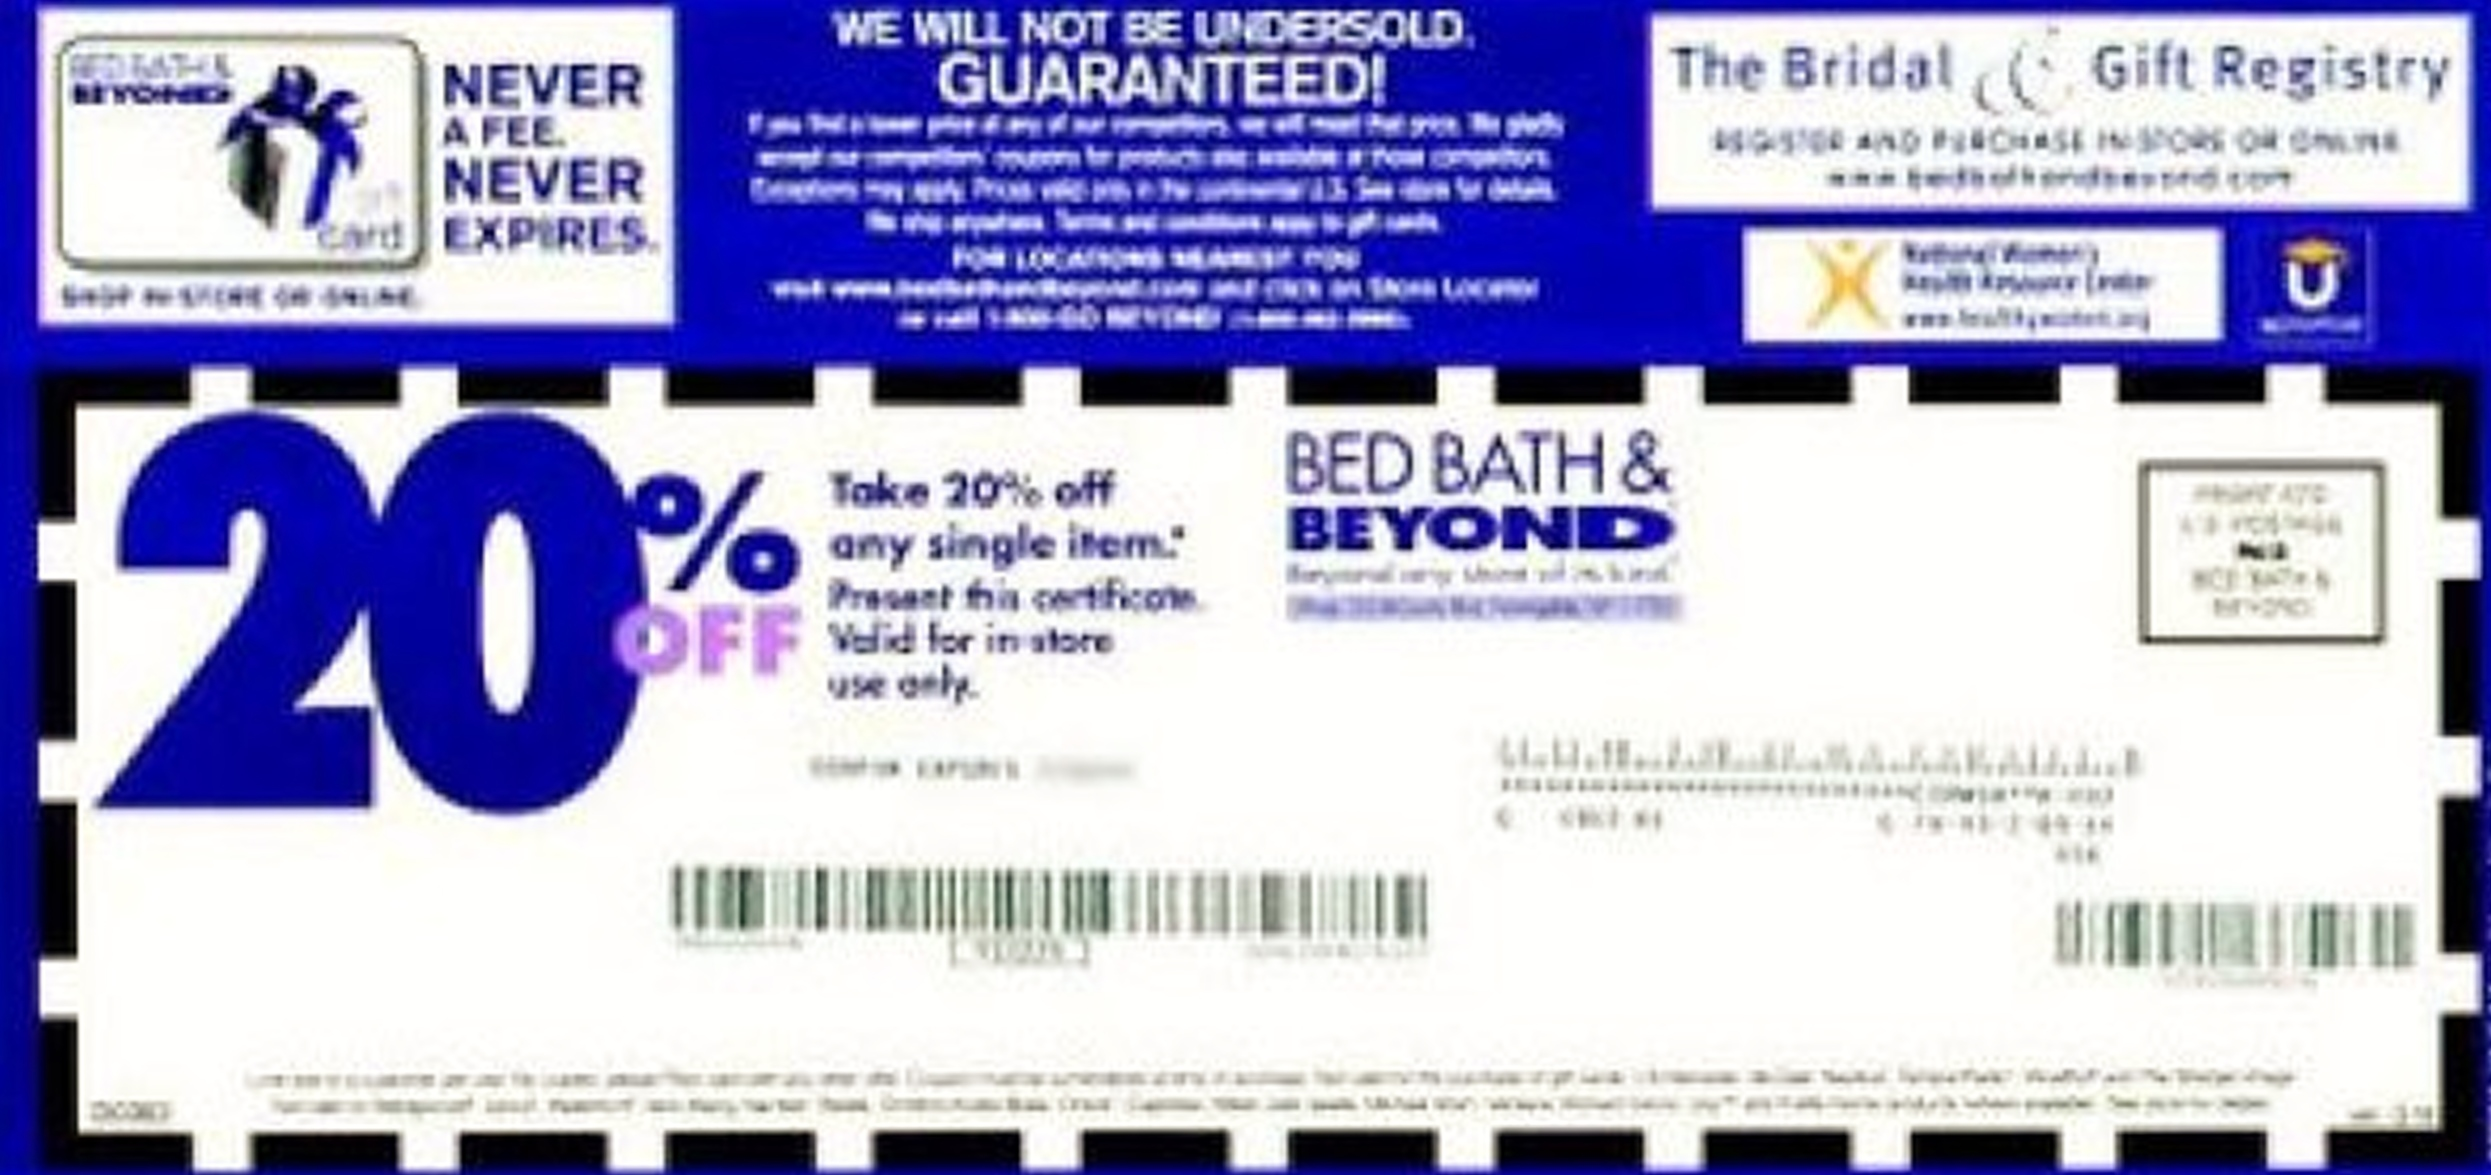 Bed bath and beyond 20 off coupon code